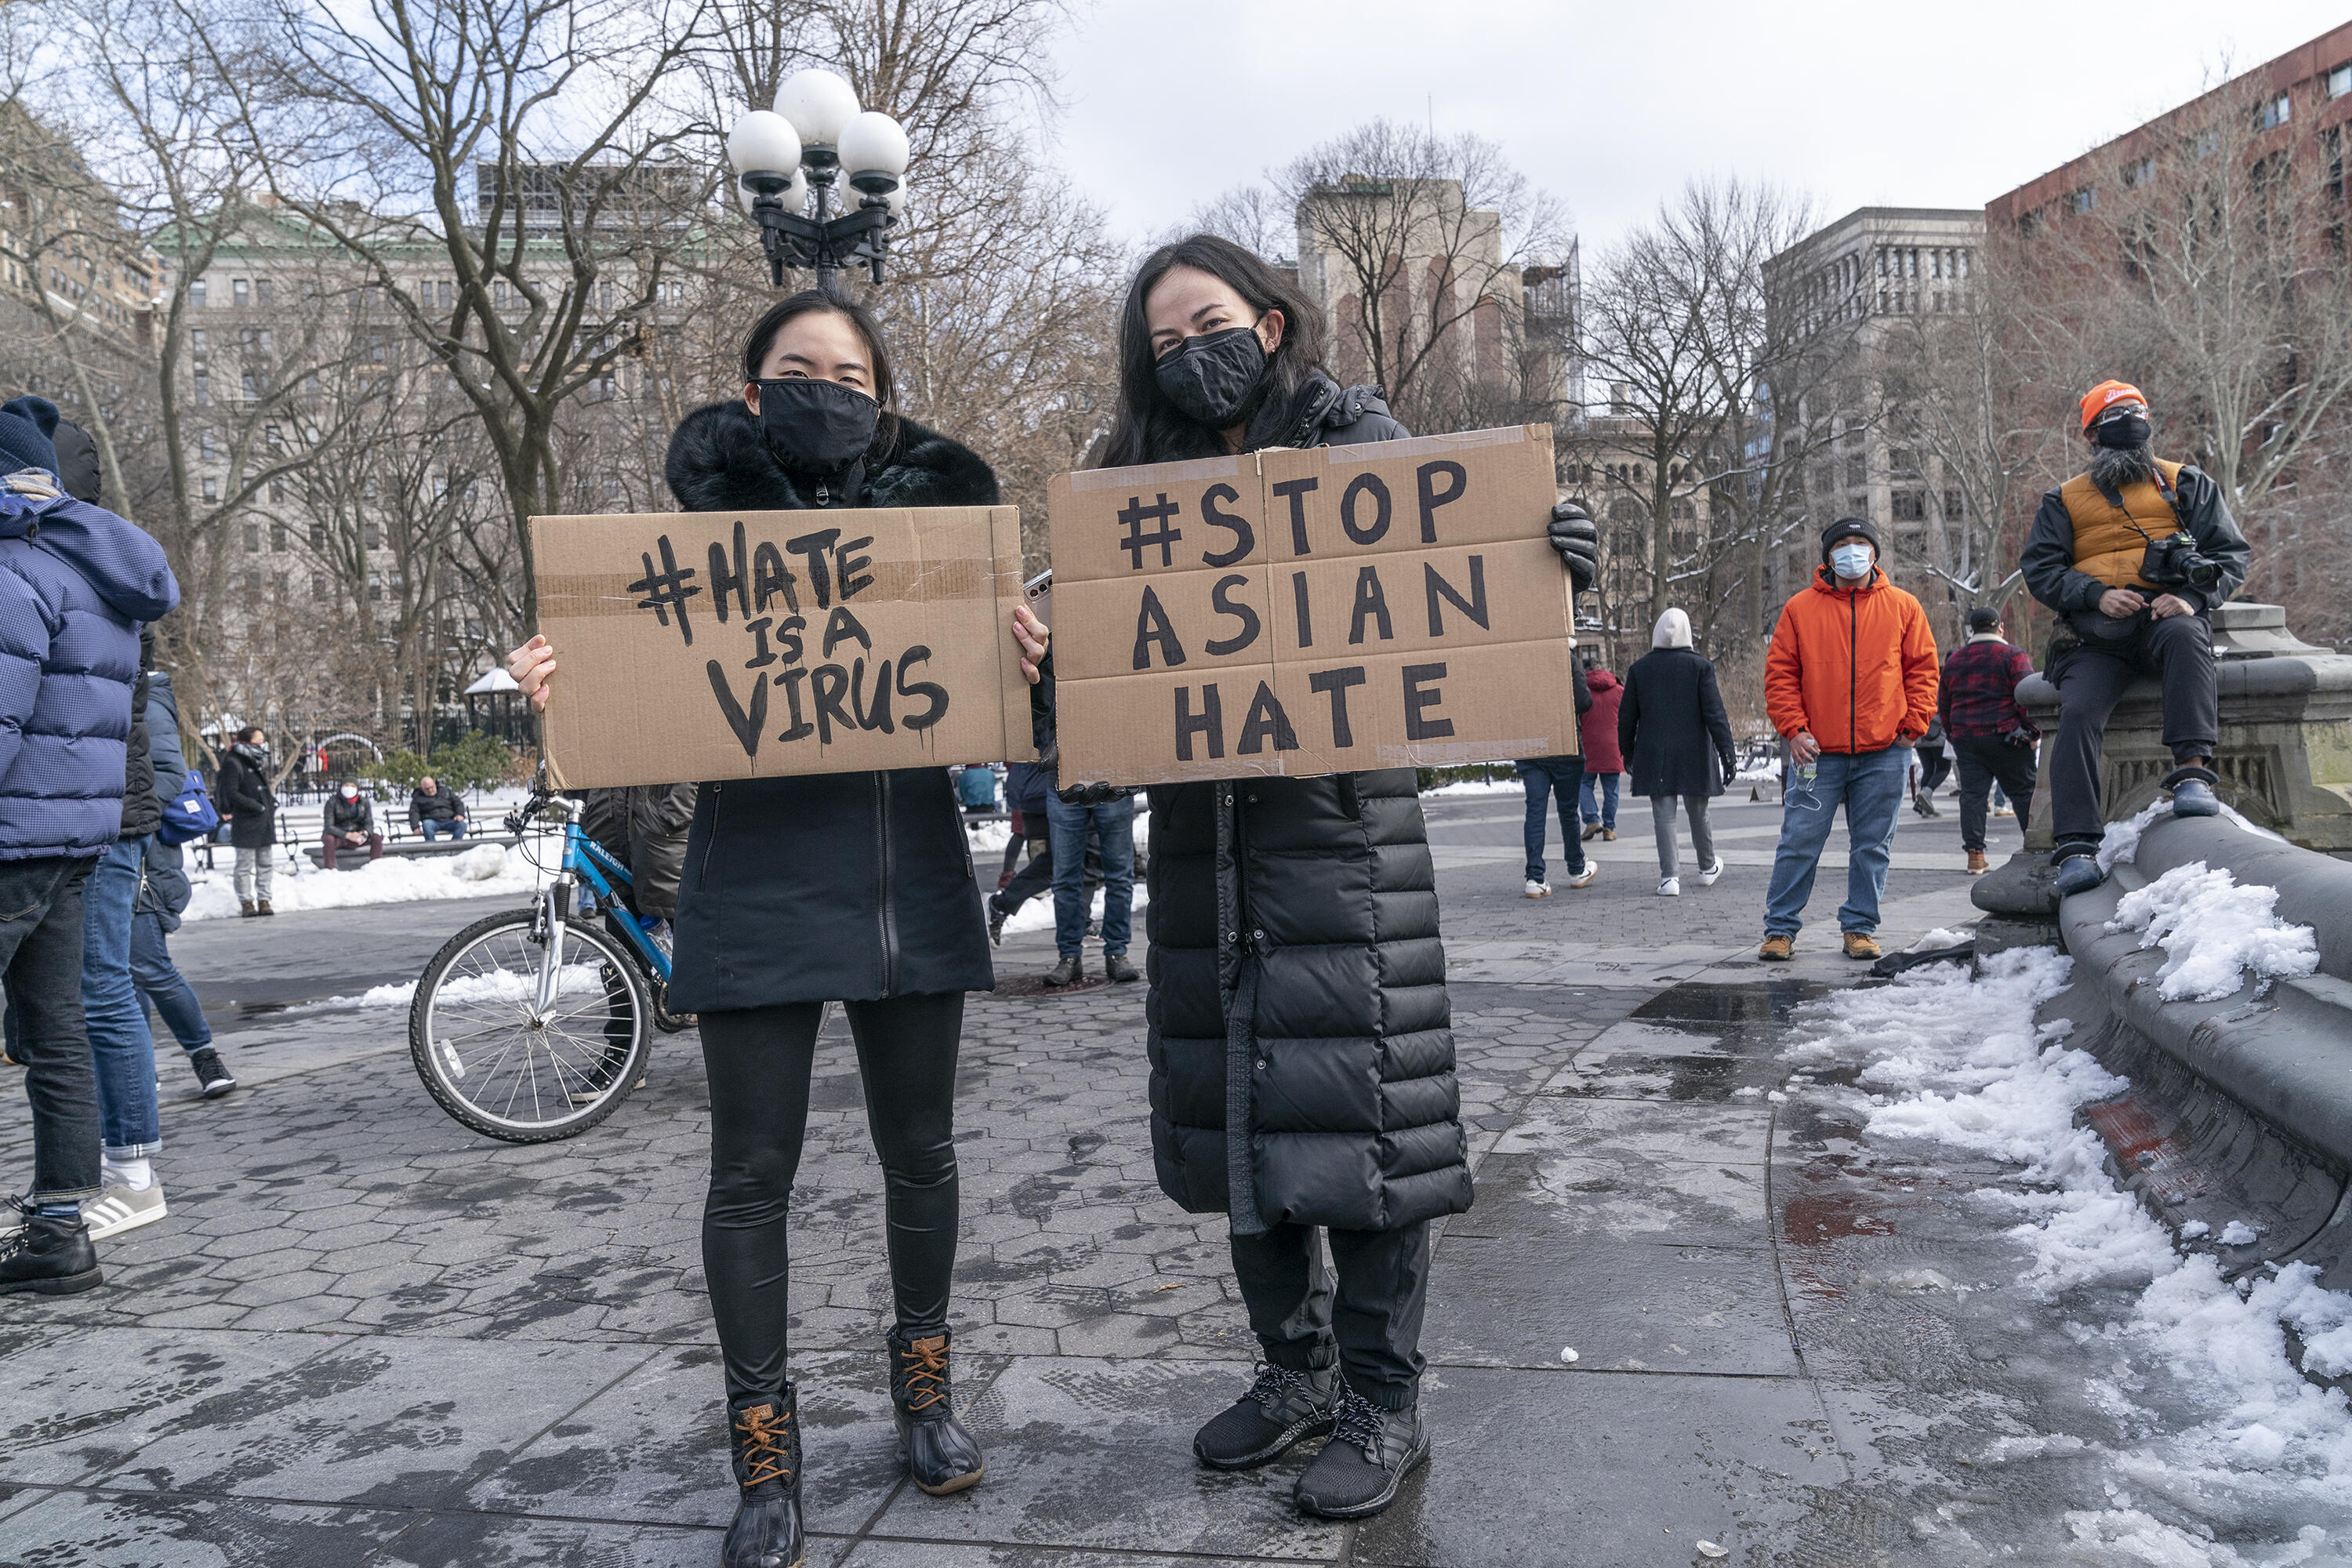 Two women holding signs saying